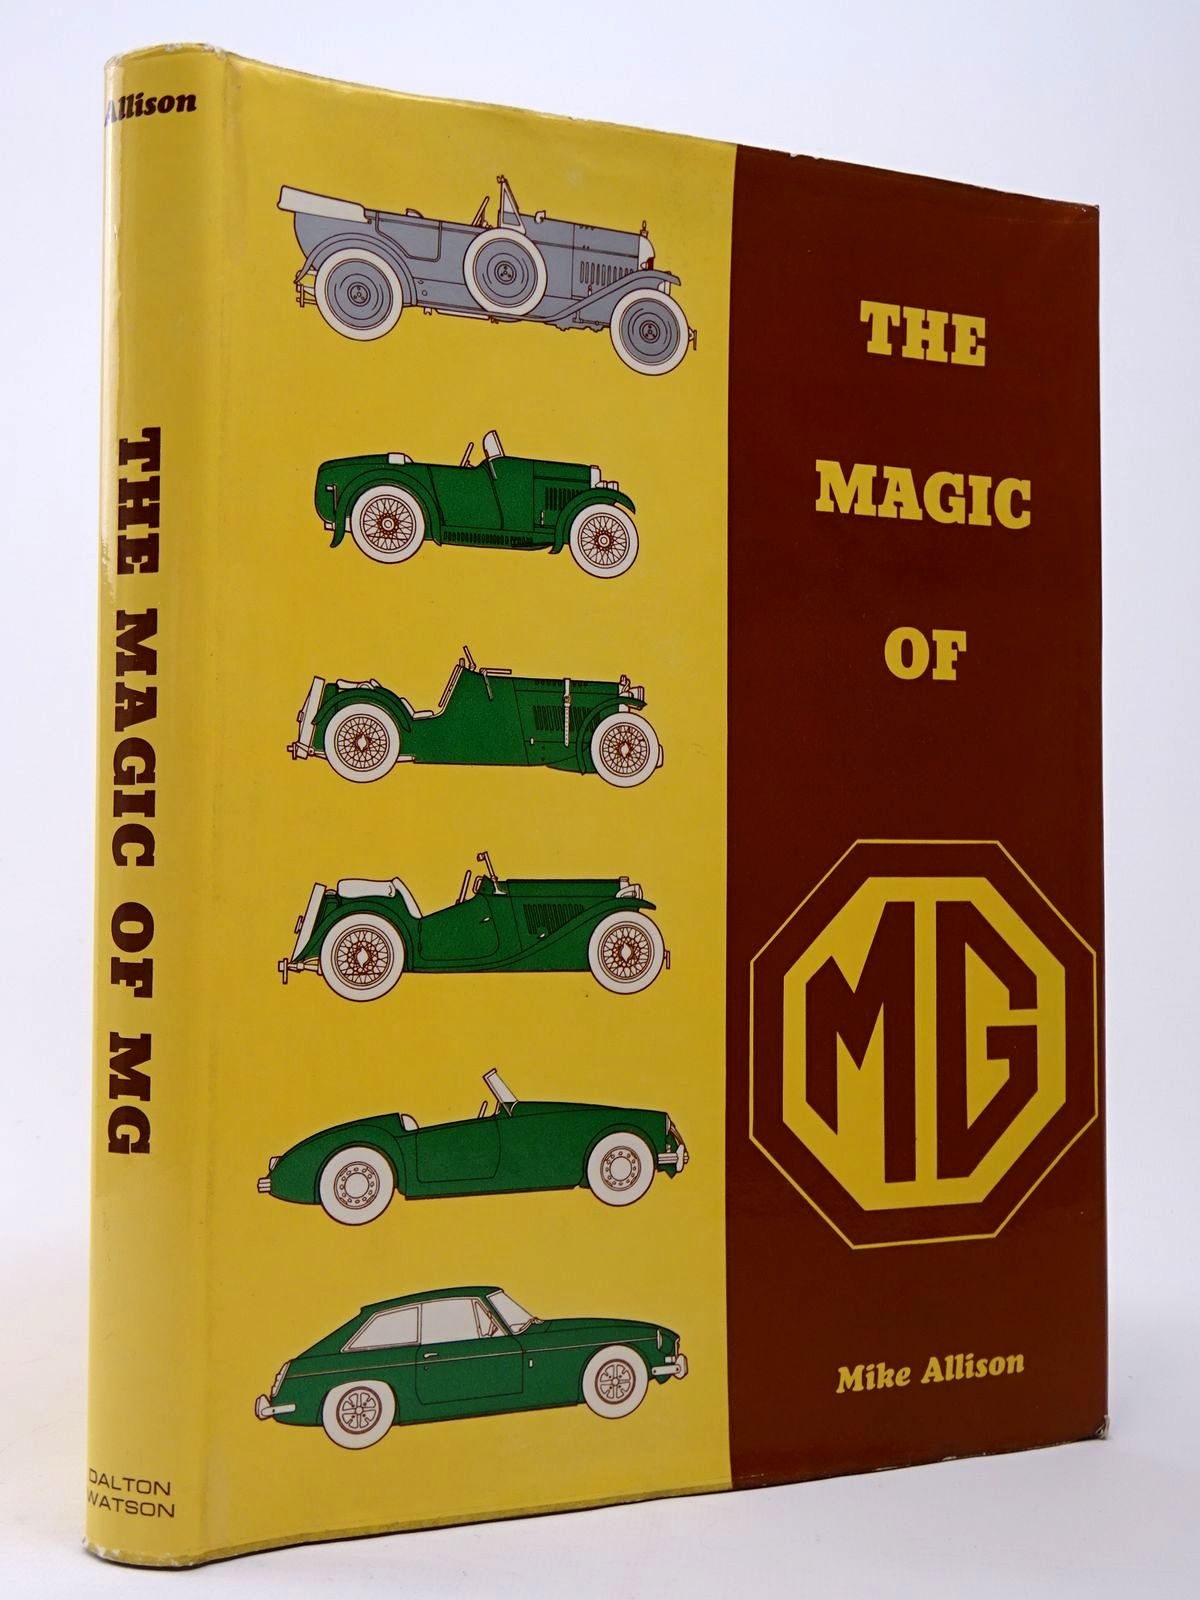 Photo of THE MAGIC OF MG written by Allison, Mike published by Dalton Watson (STOCK CODE: 1817432)  for sale by Stella & Rose's Books